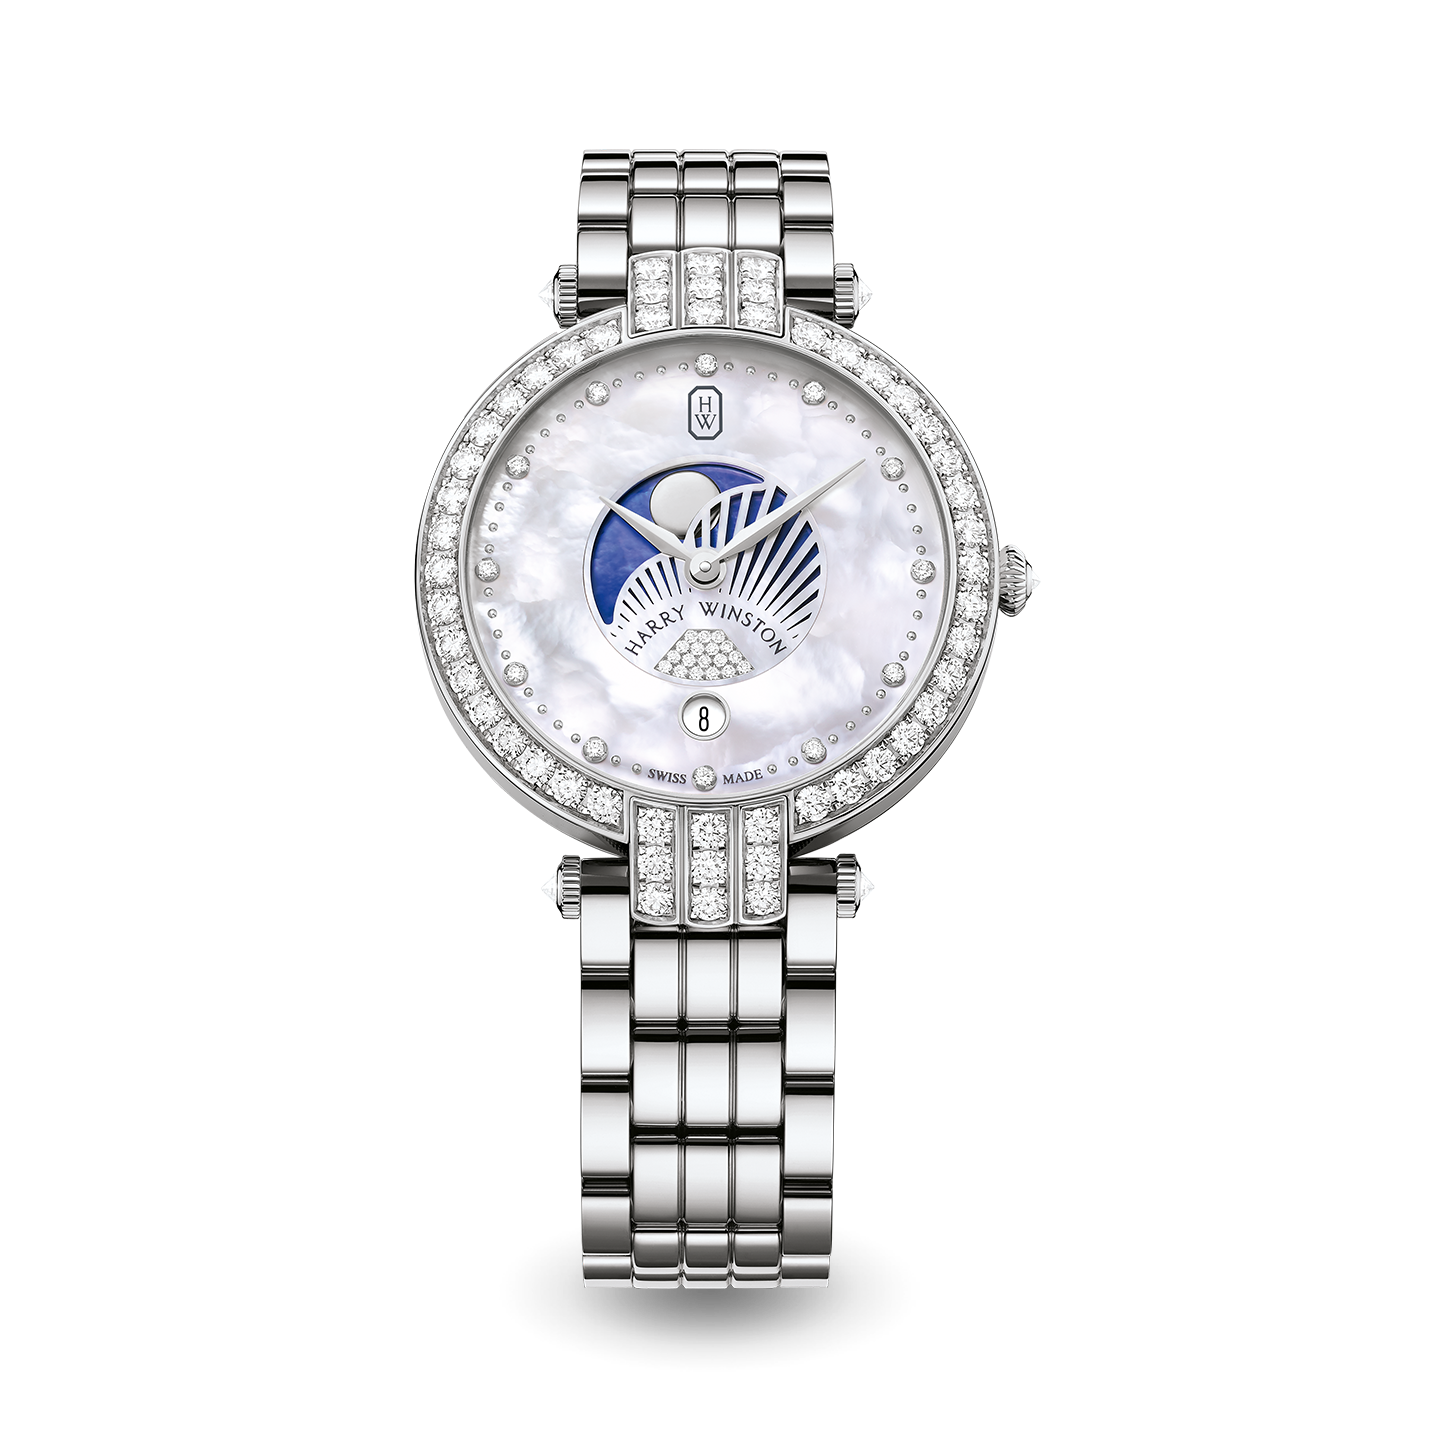 Premier Moon Phase 36mm, product image 1